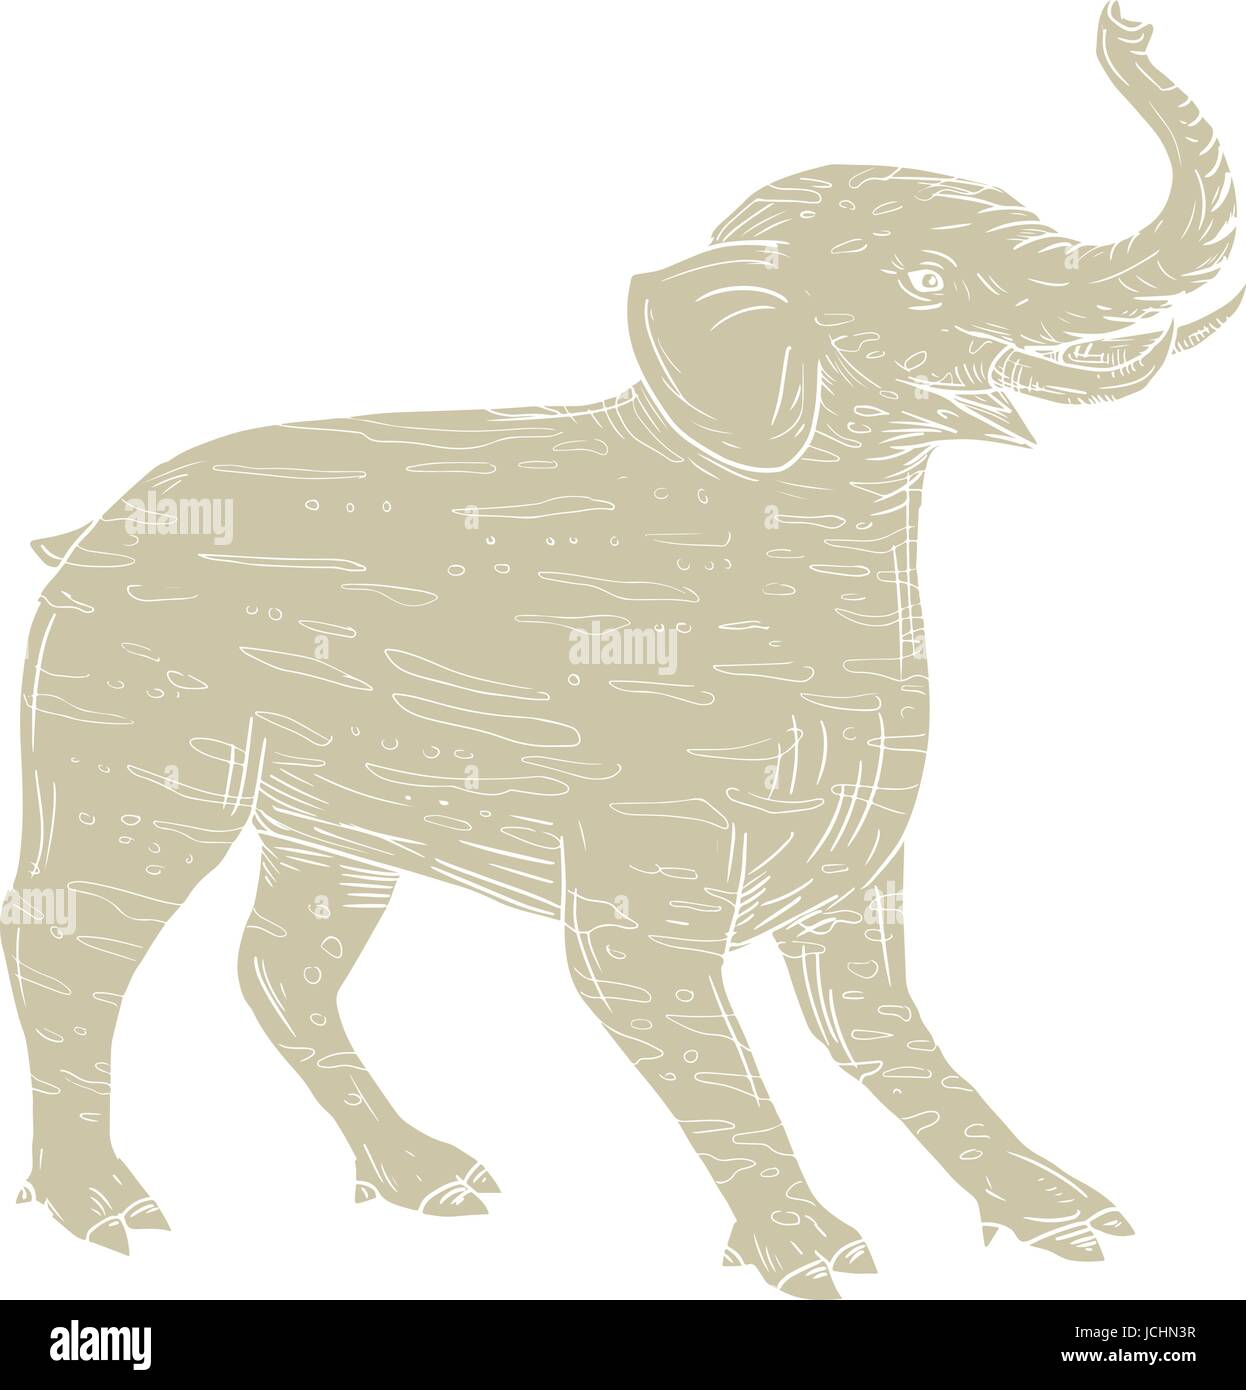 Drawing sketch style illustration of a Baku, a Chinese and Japanese Folklore tapir-like creature with elephantine - Stock Vector